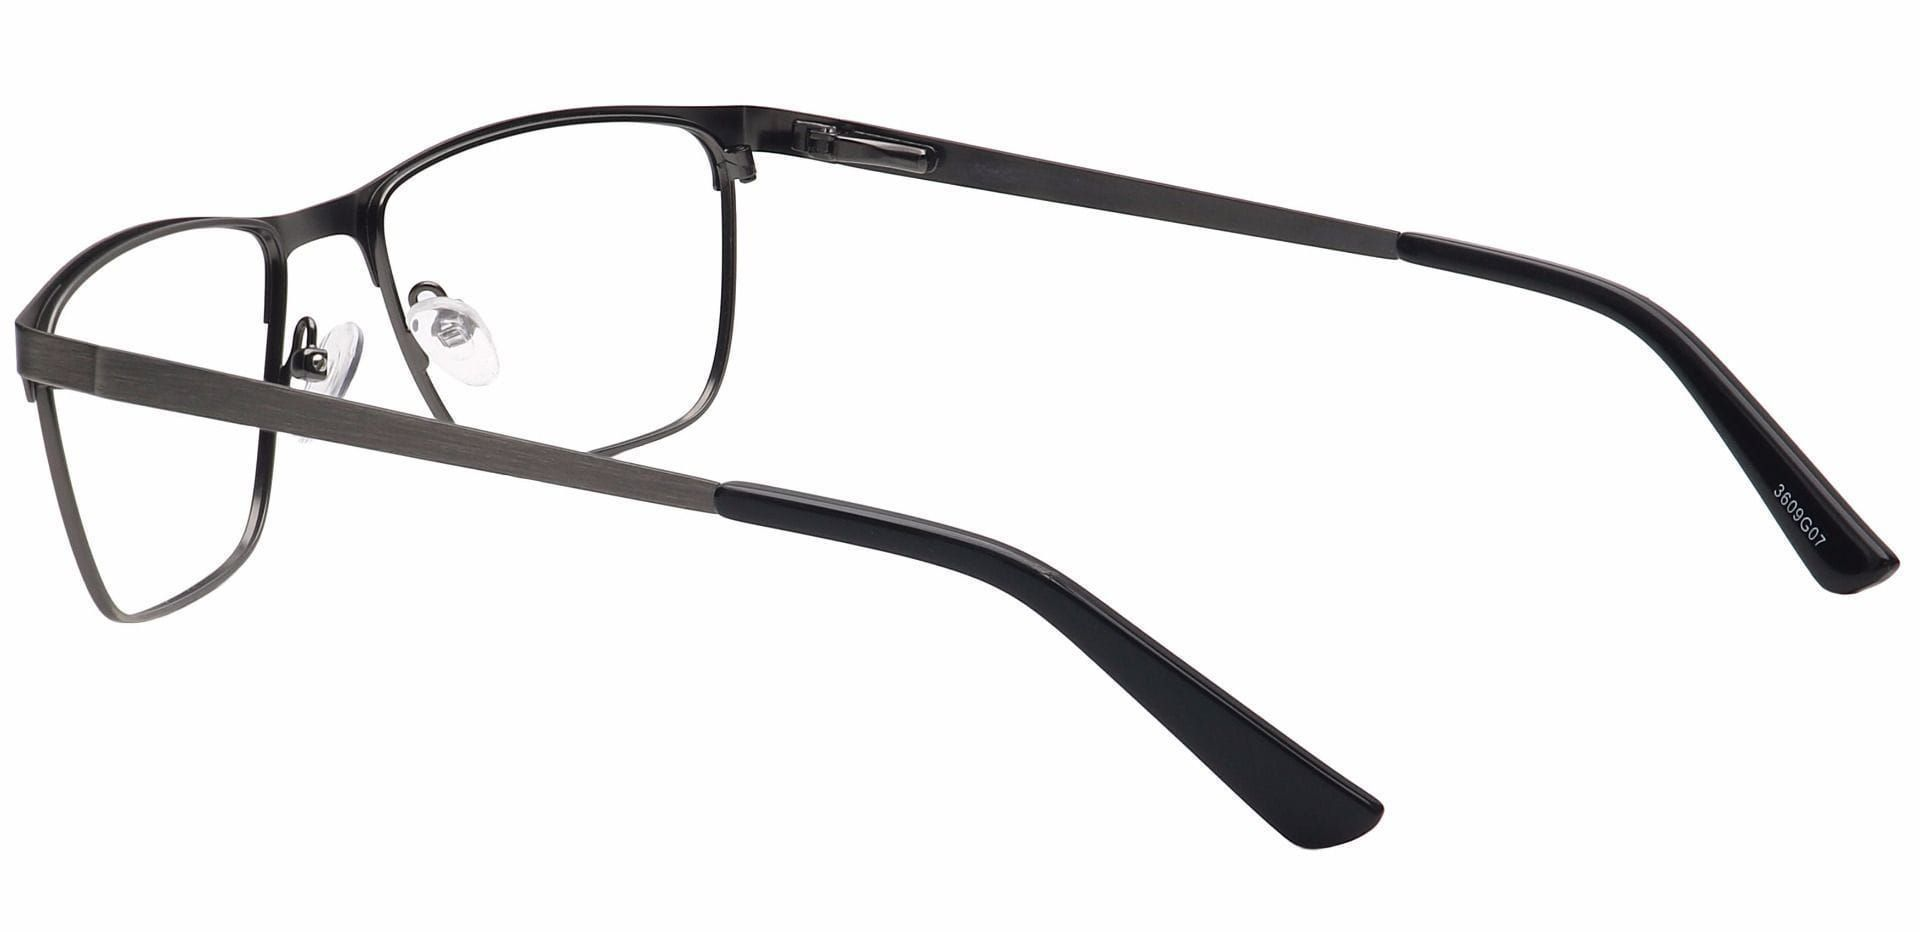 Paradigm Rectangle Lined Bifocal Glasses - Black